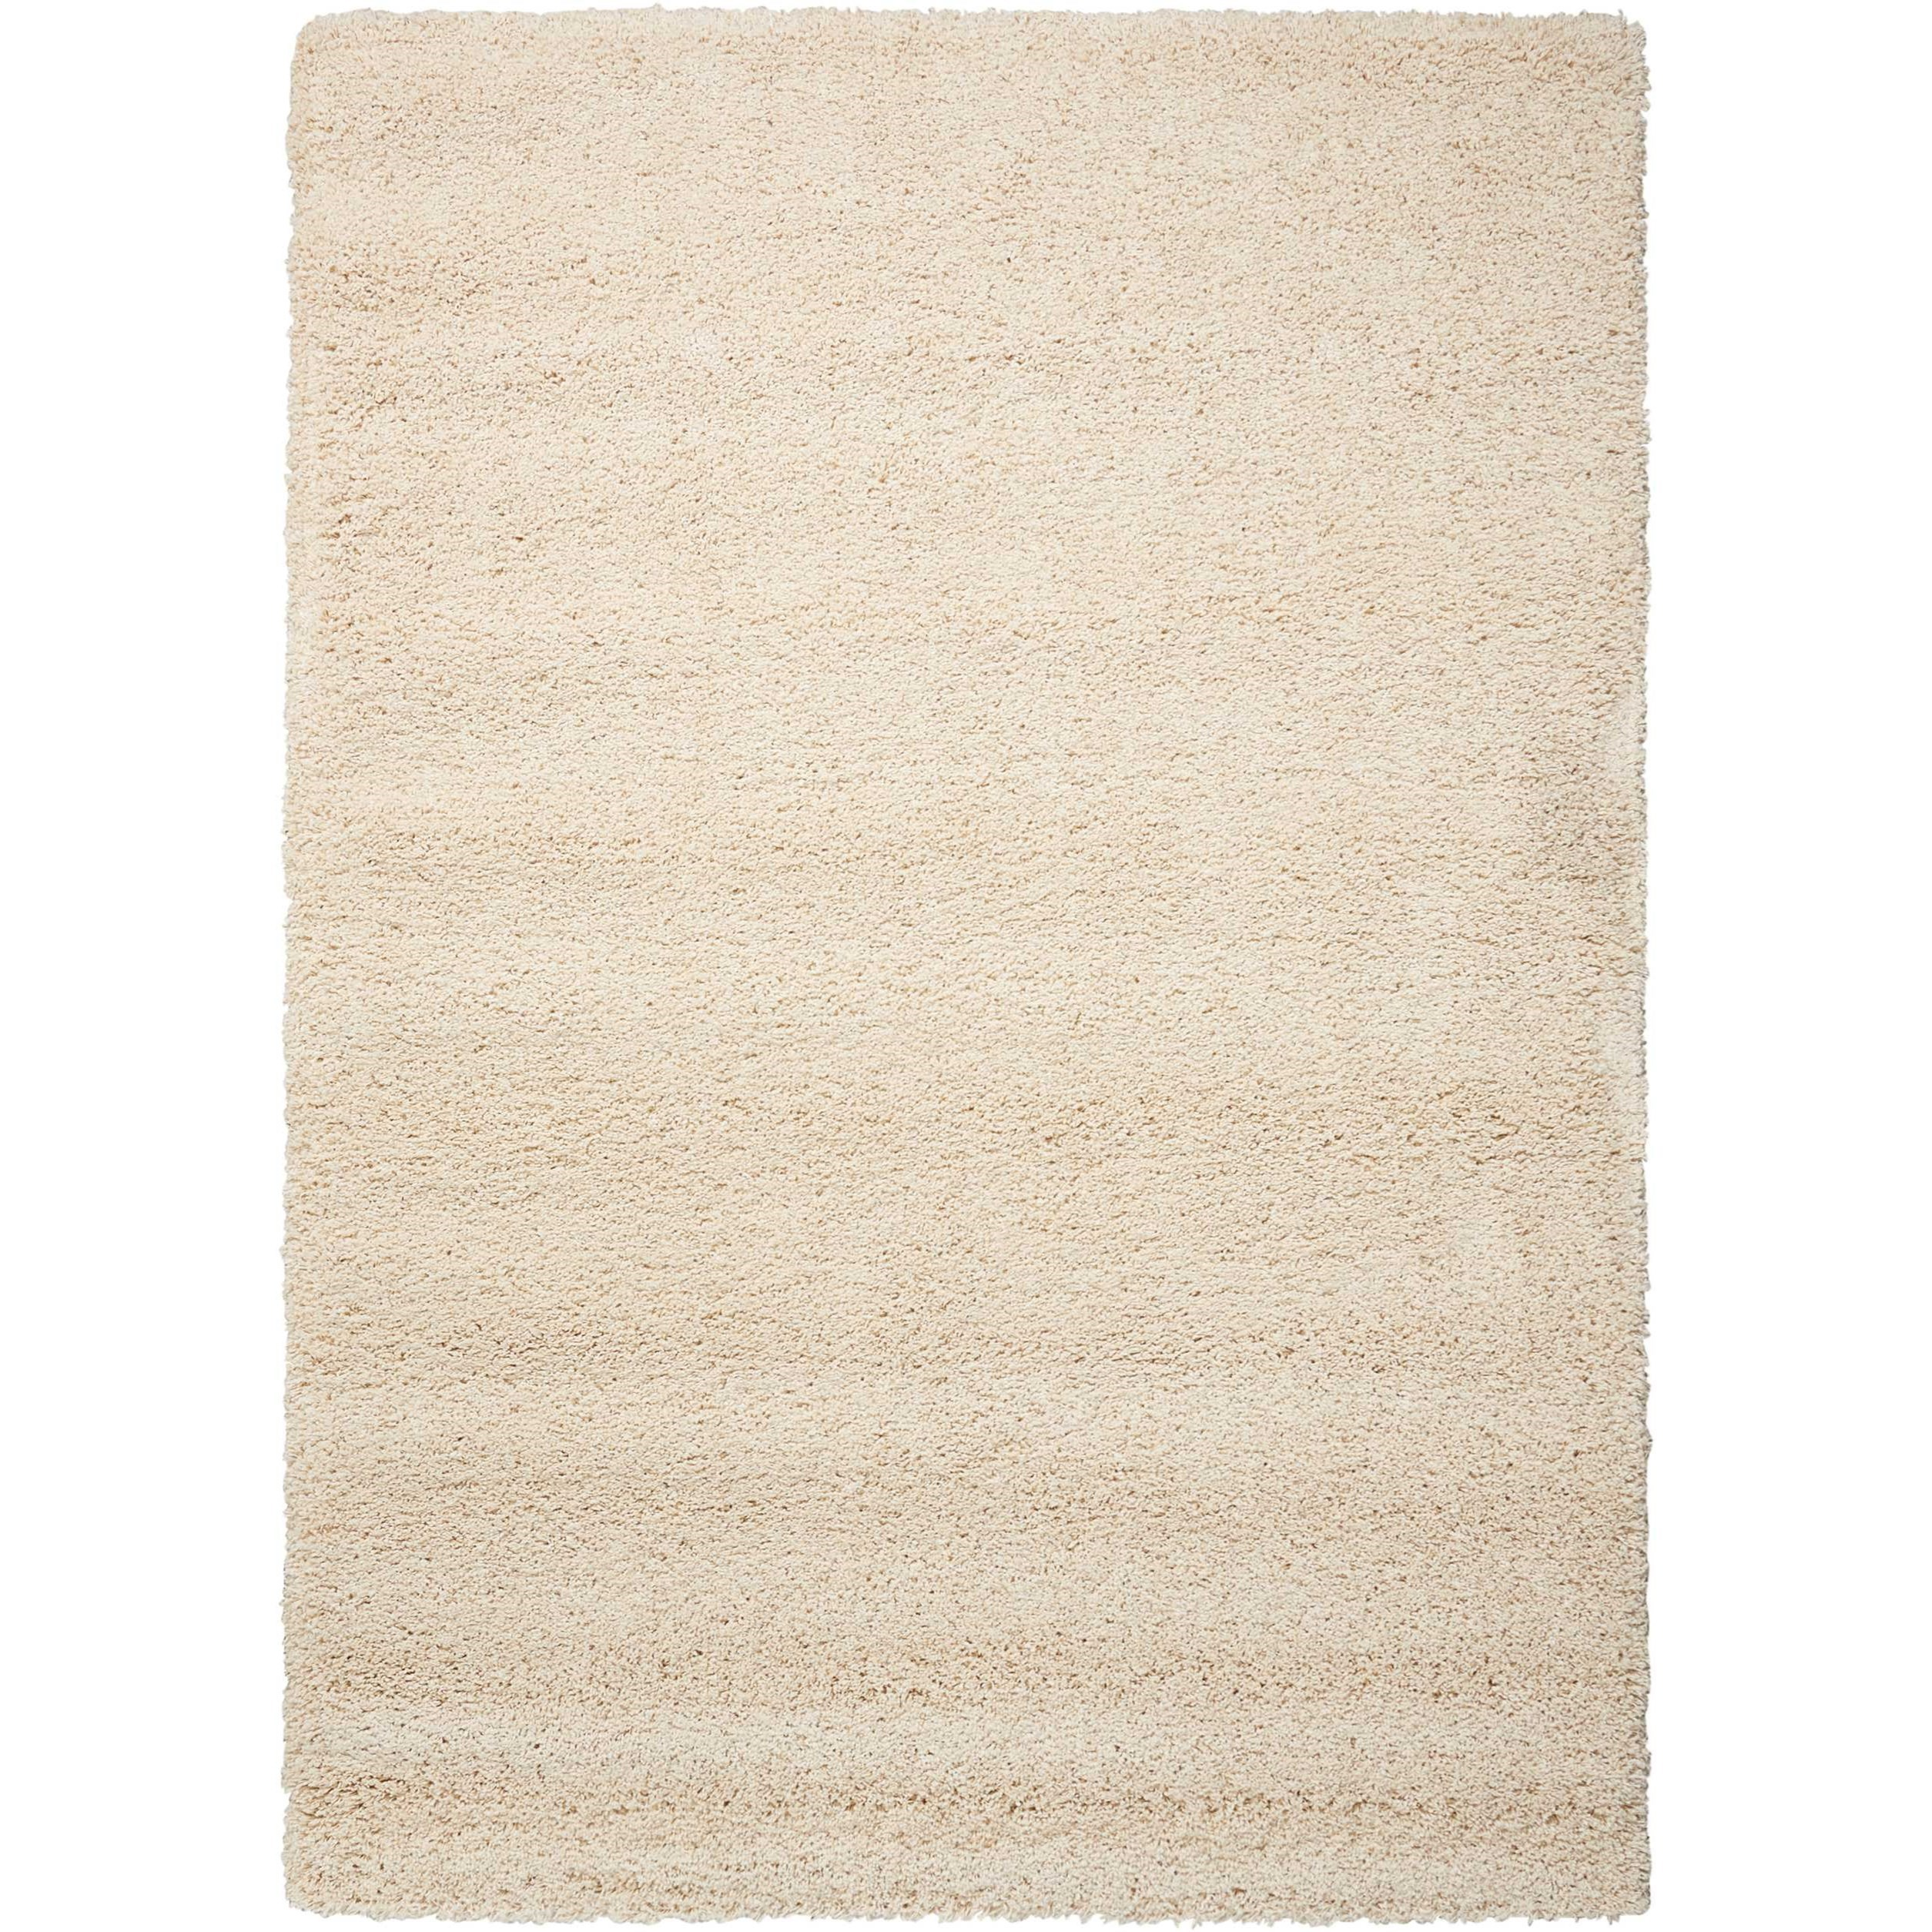 "Amore 7'10"" x 10'10"" Cream Rectangle Rug by Nourison at Home Collections Furniture"